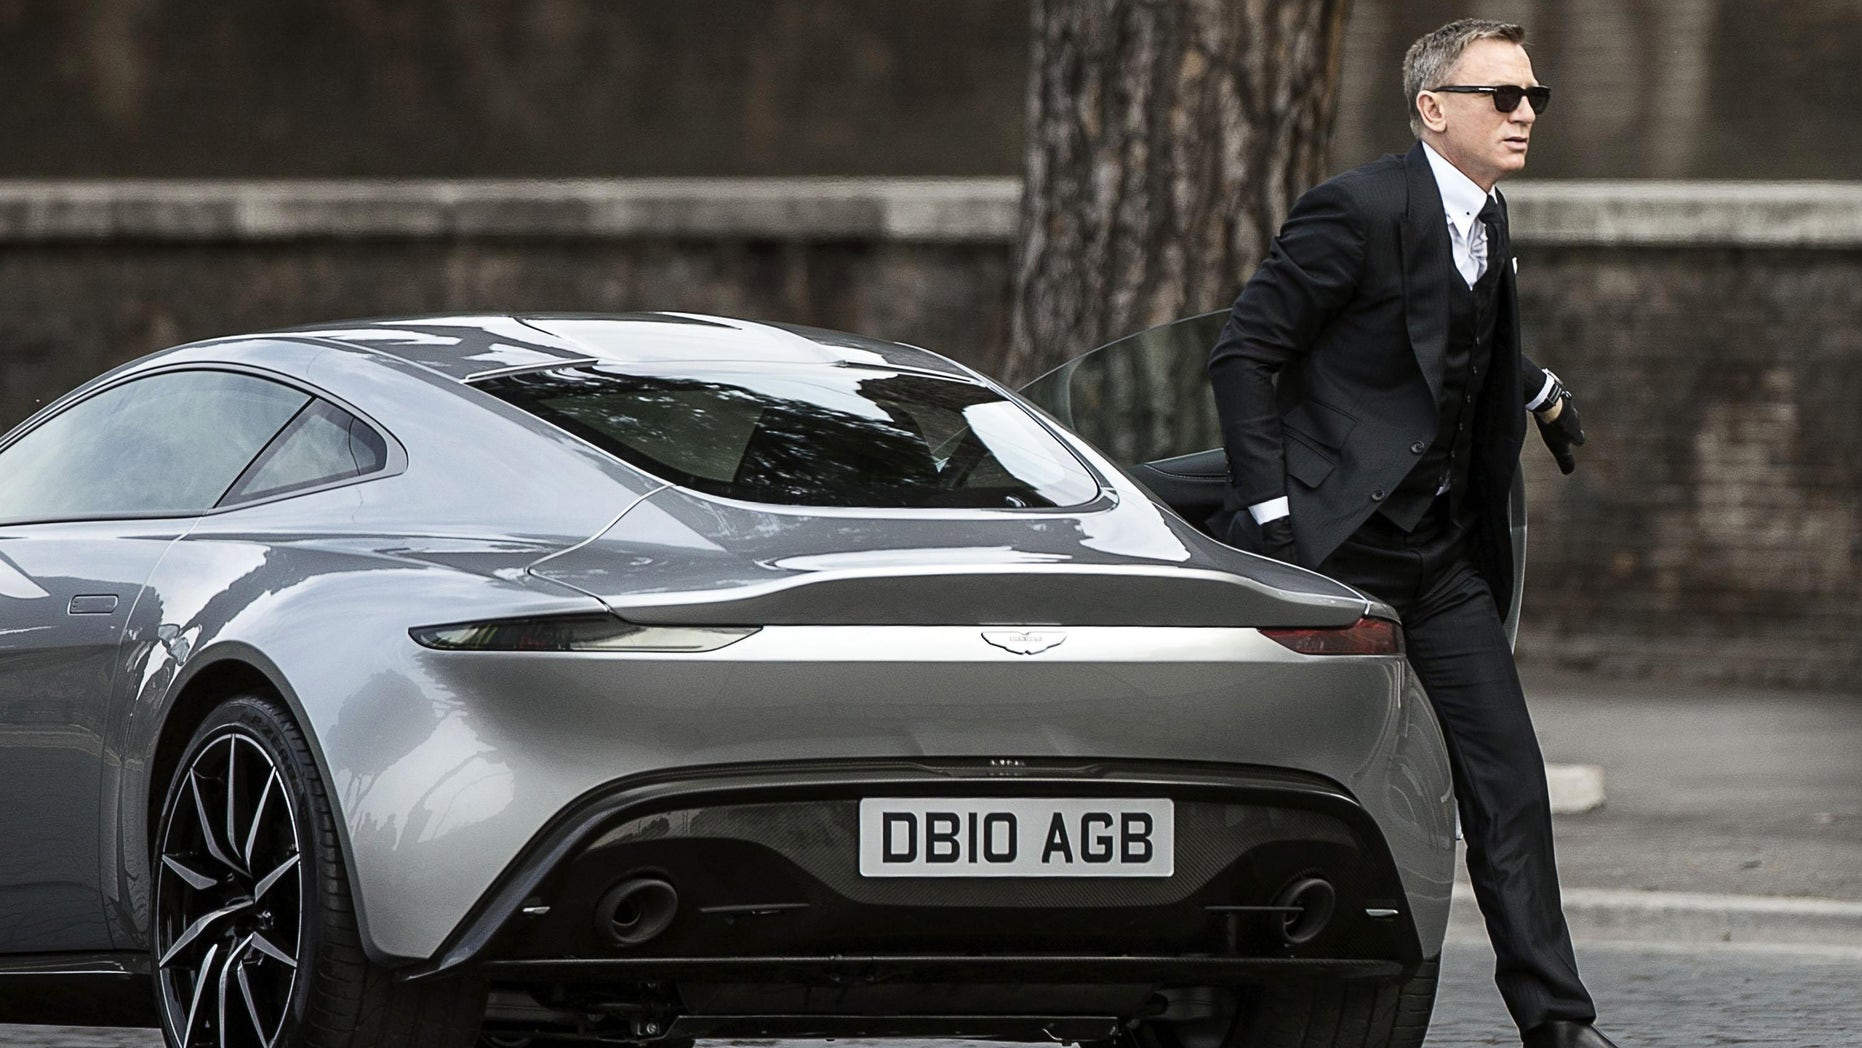 """Daniel Craig during the shooting of the latest James Bond movie, """"Spectre,"""" in Rome, Feb. 21, 2015."""